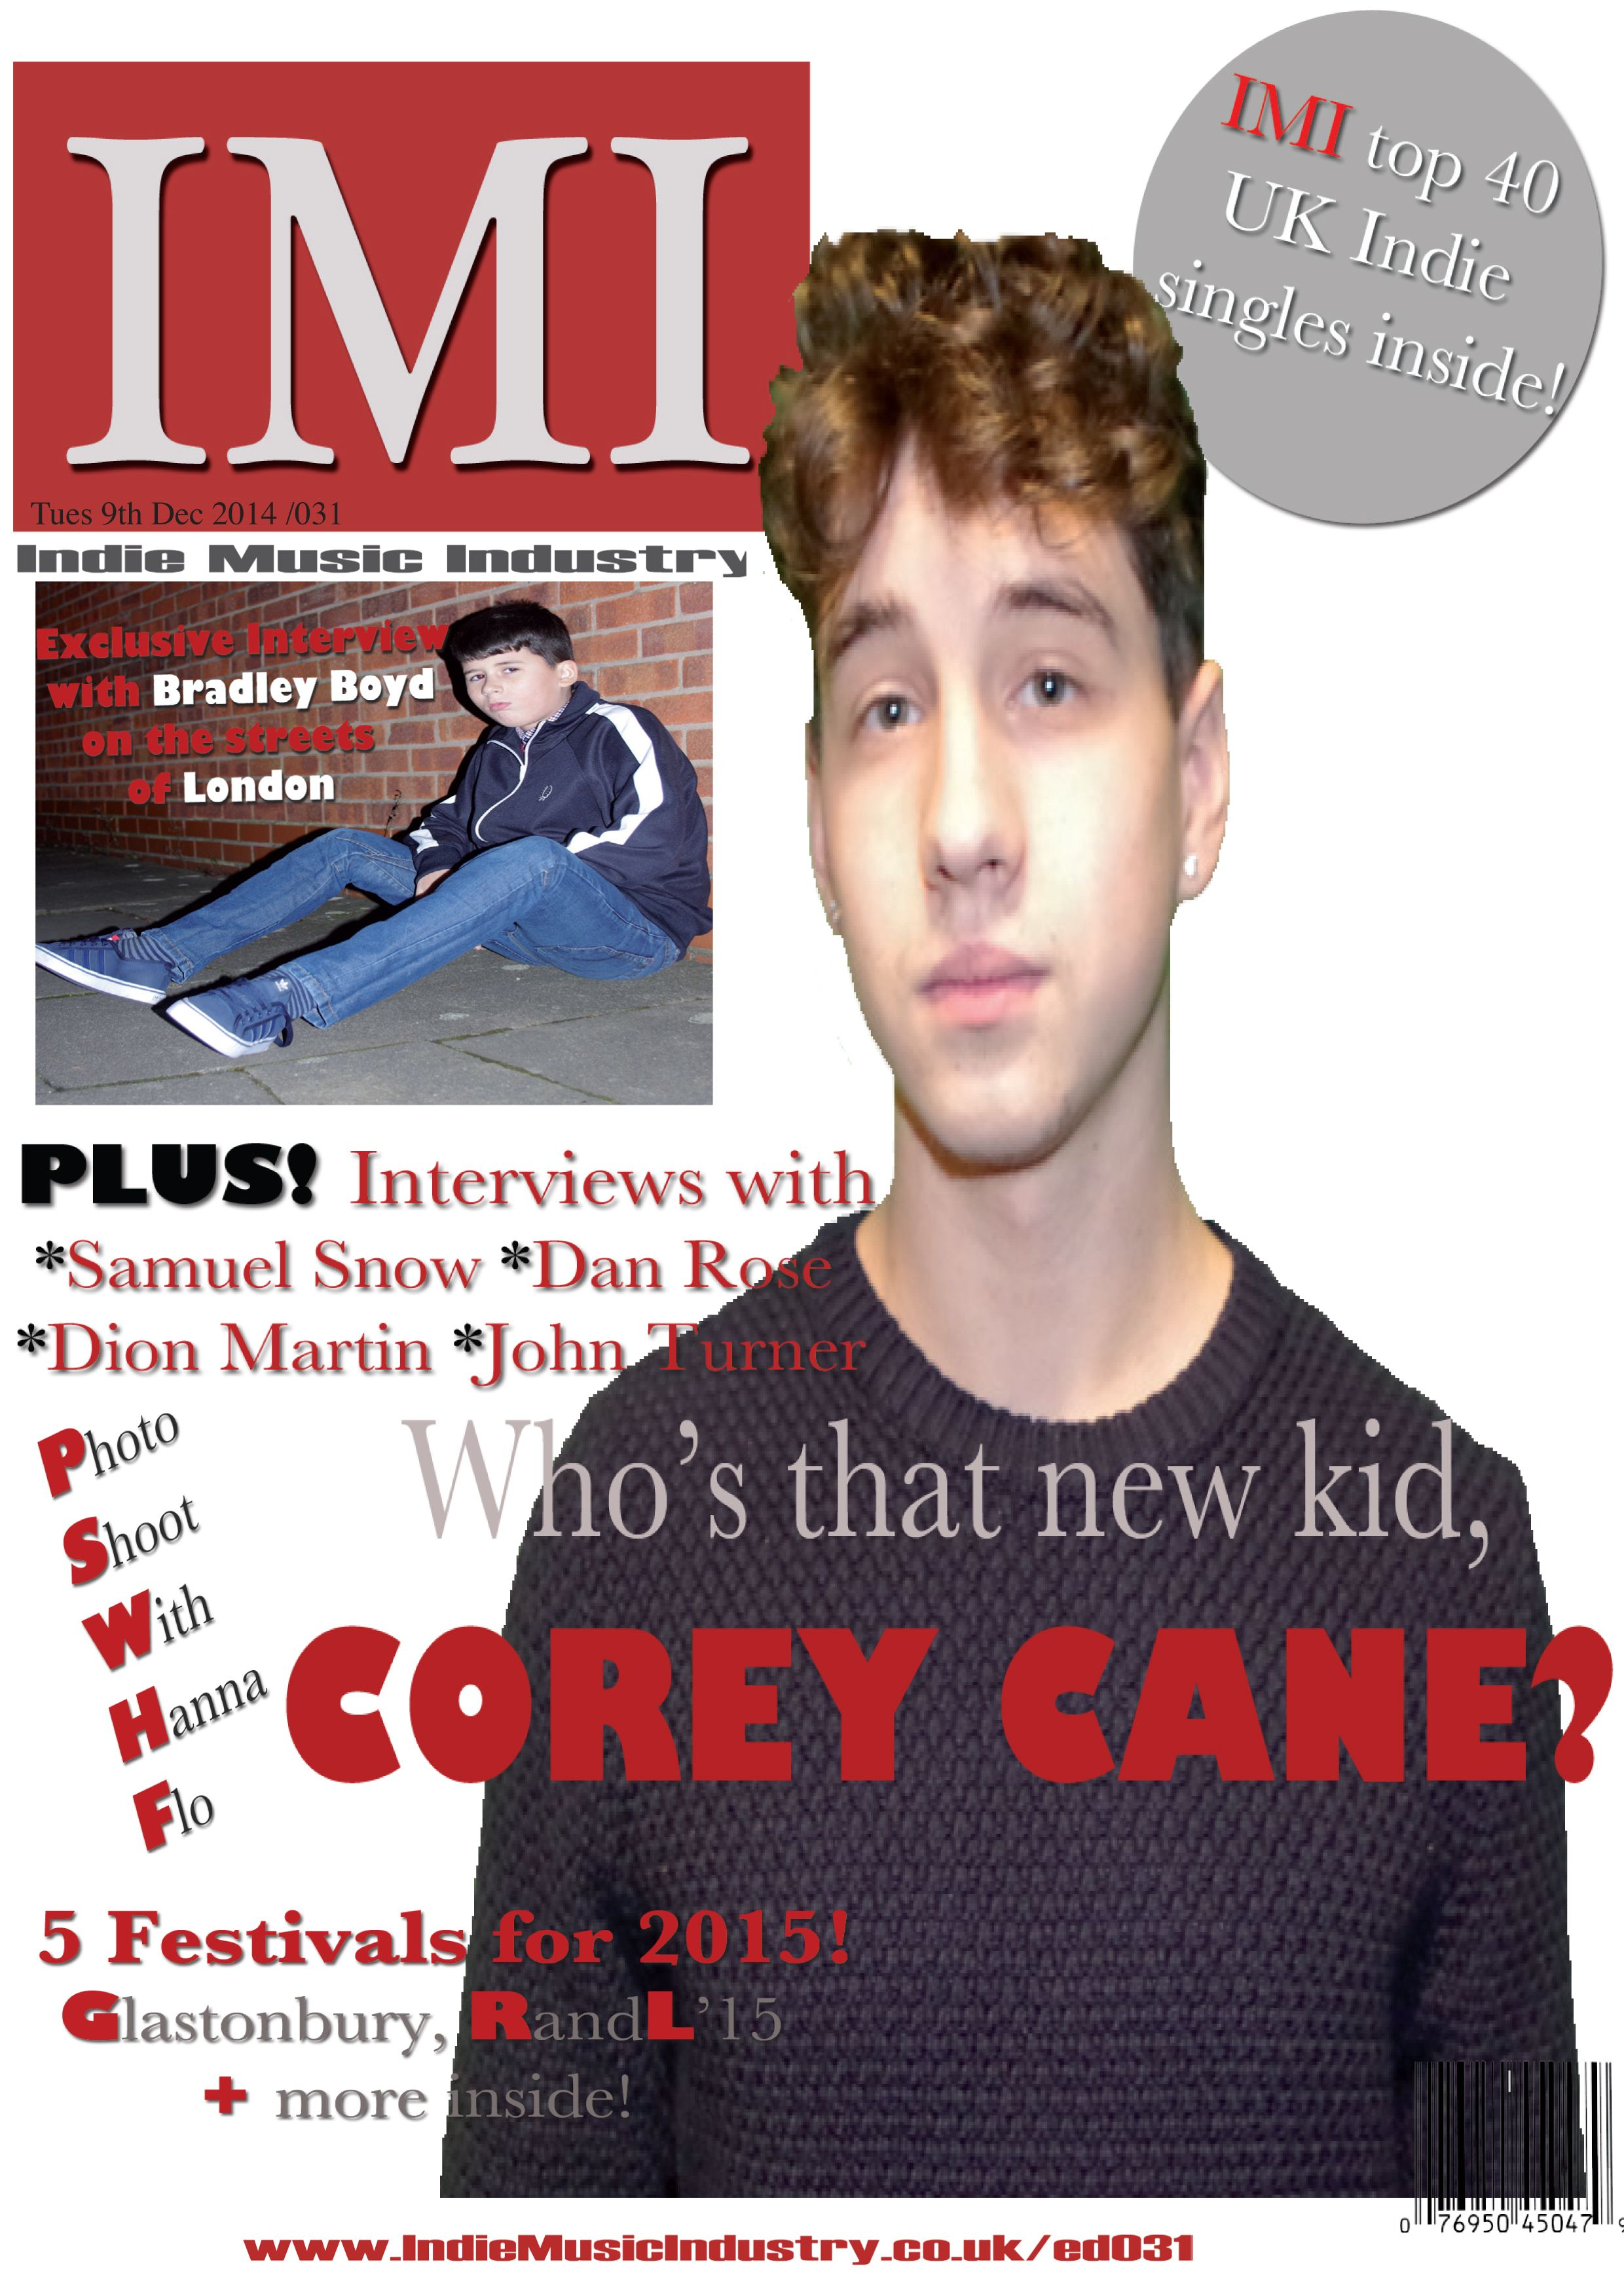 This is first draft of my magazine front cover. At first I was happy with this design as it had took me a while to accomplish. However, once I had finished creating all 3 main parts of my magazine I started to notice unsuccessful conventions I had created, especially on my front cover. i had noticed how my main image was out of proportion, and that the background was very blank and basis. I had set up a questionnaire, like I had for audience research, to ask for feedback on my magazine.